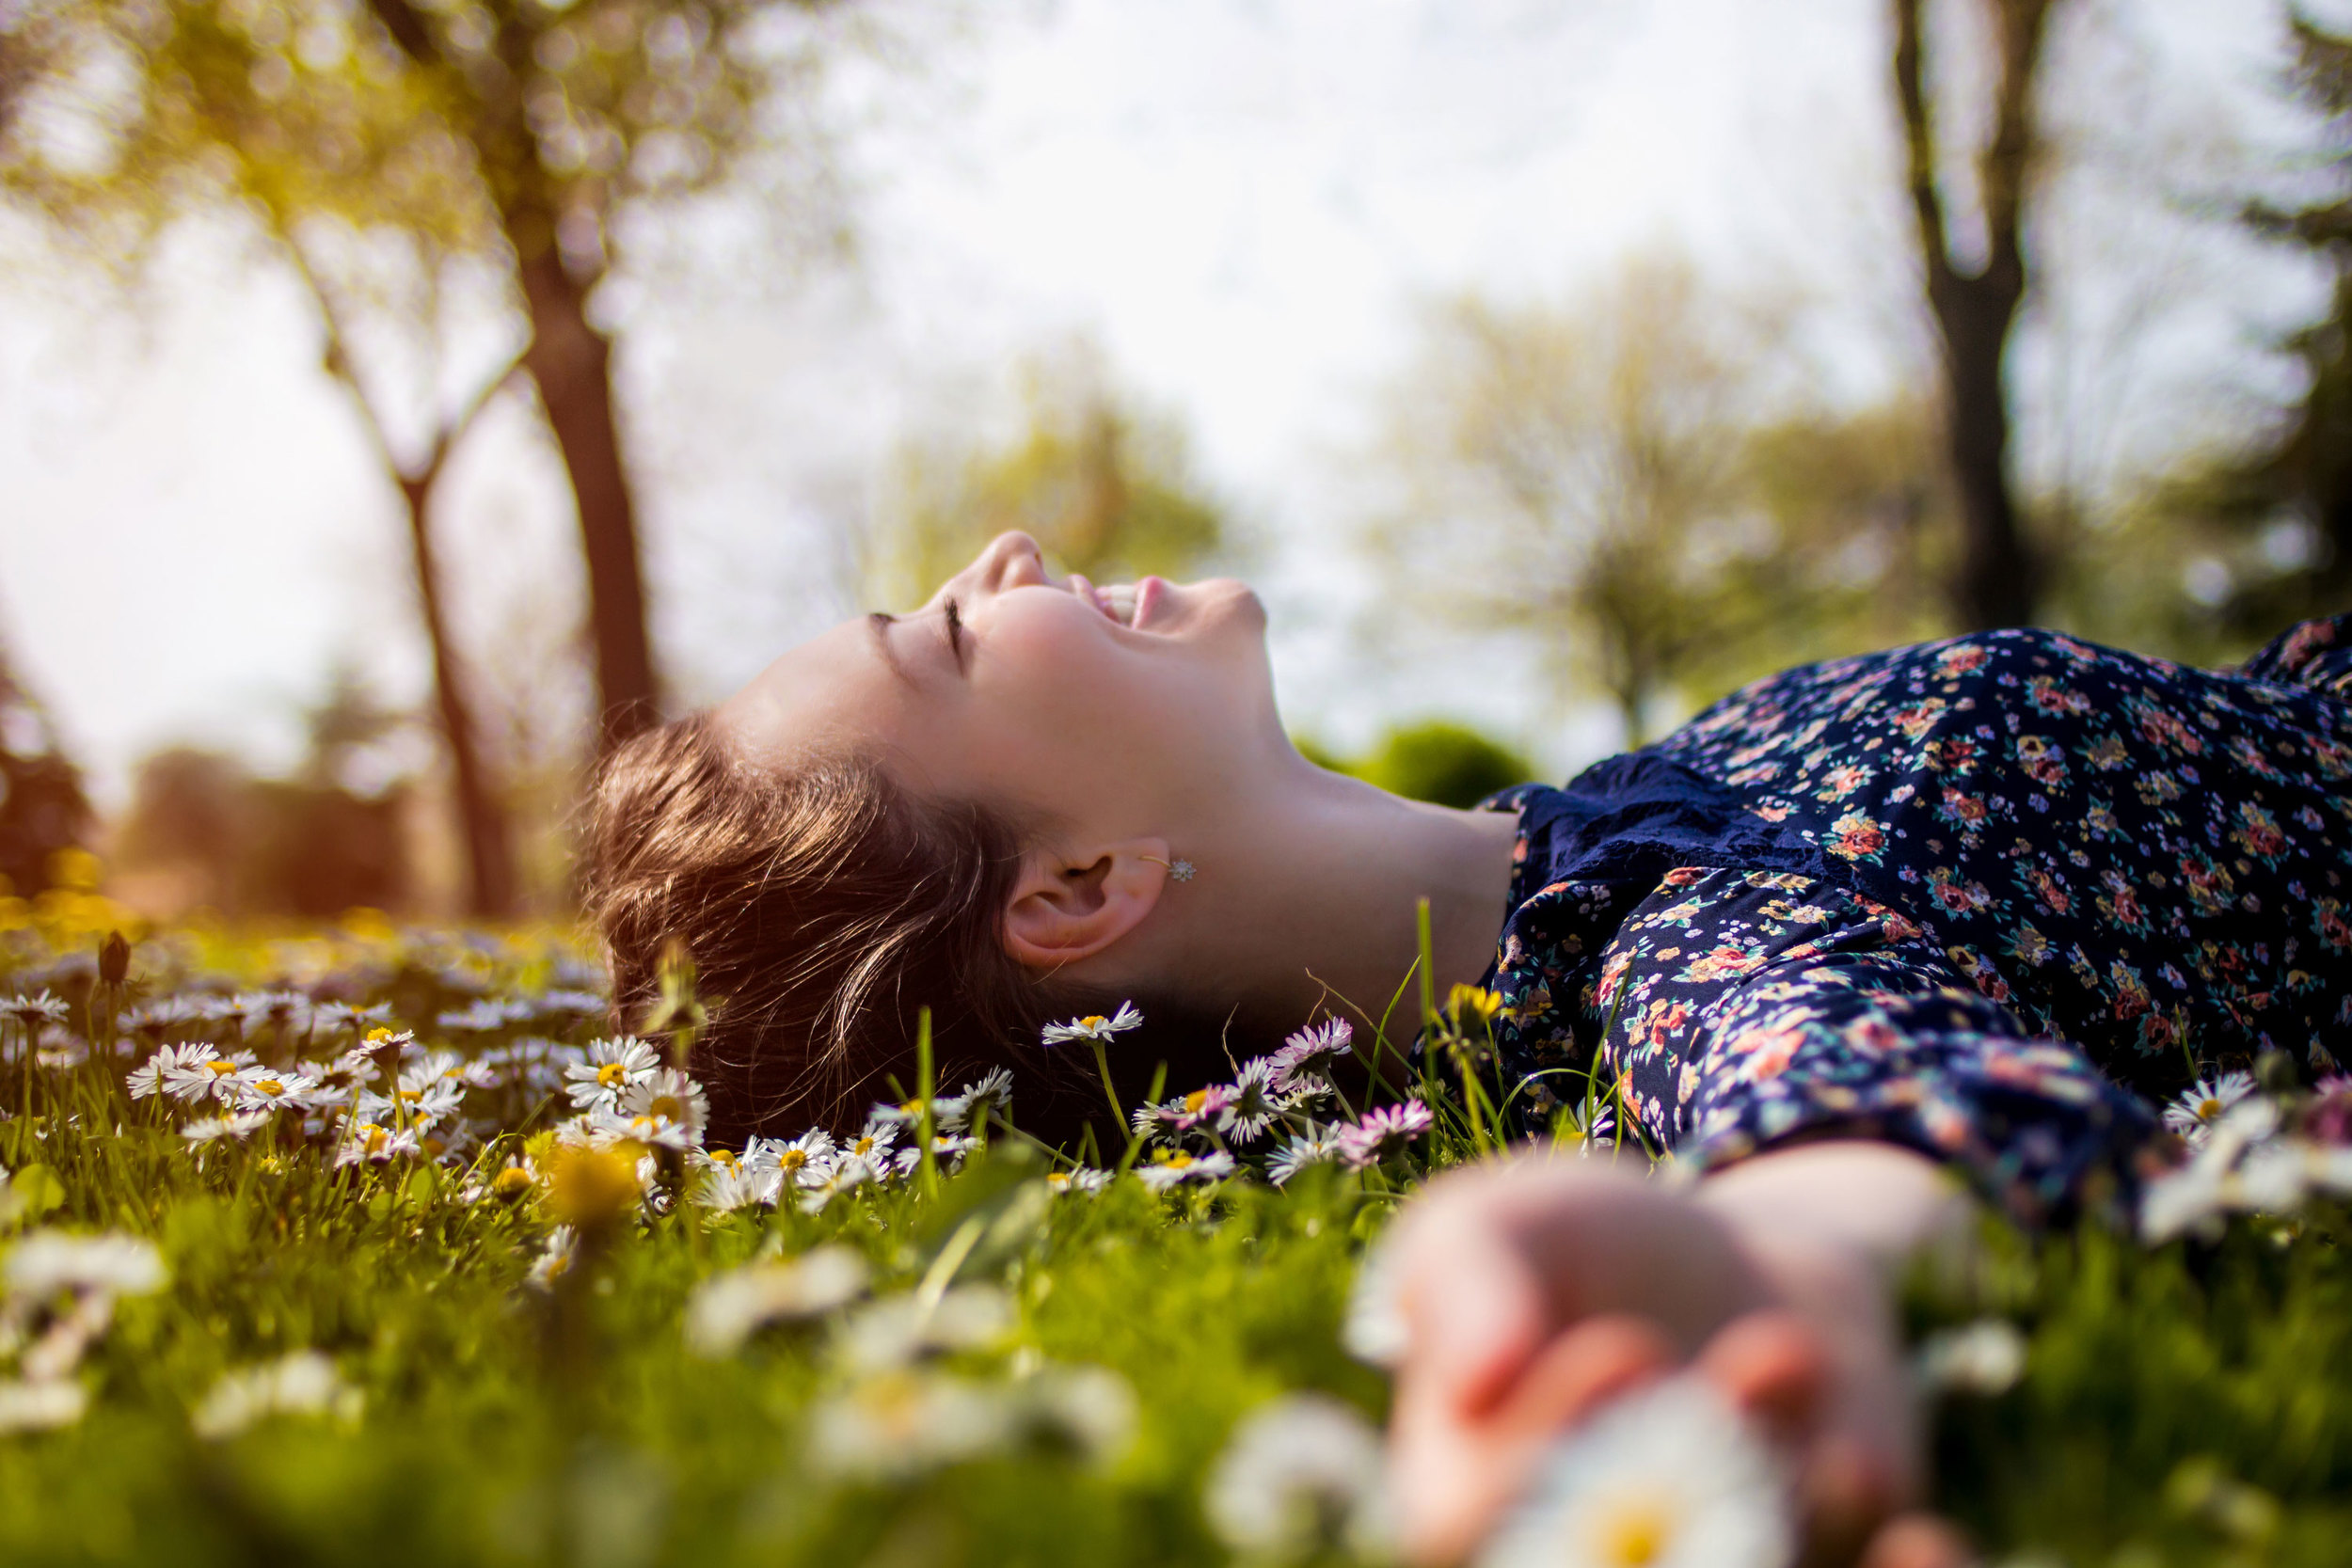 Girl smiling and lying in the grass